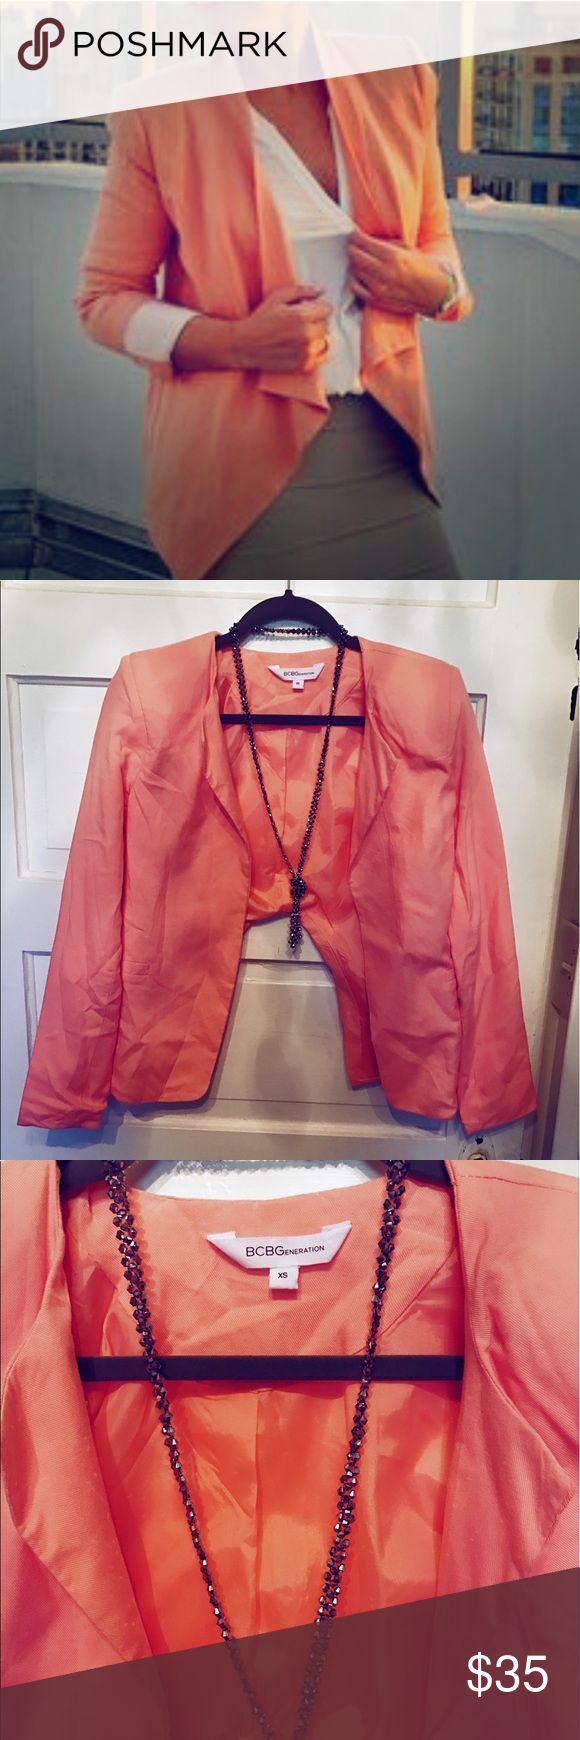 Peach blazer This gorgeous blazer is in good condition, just needs to be ironed. Perfect to dress up any summer outfit! BCBGeneration Jackets & Coats Blazers